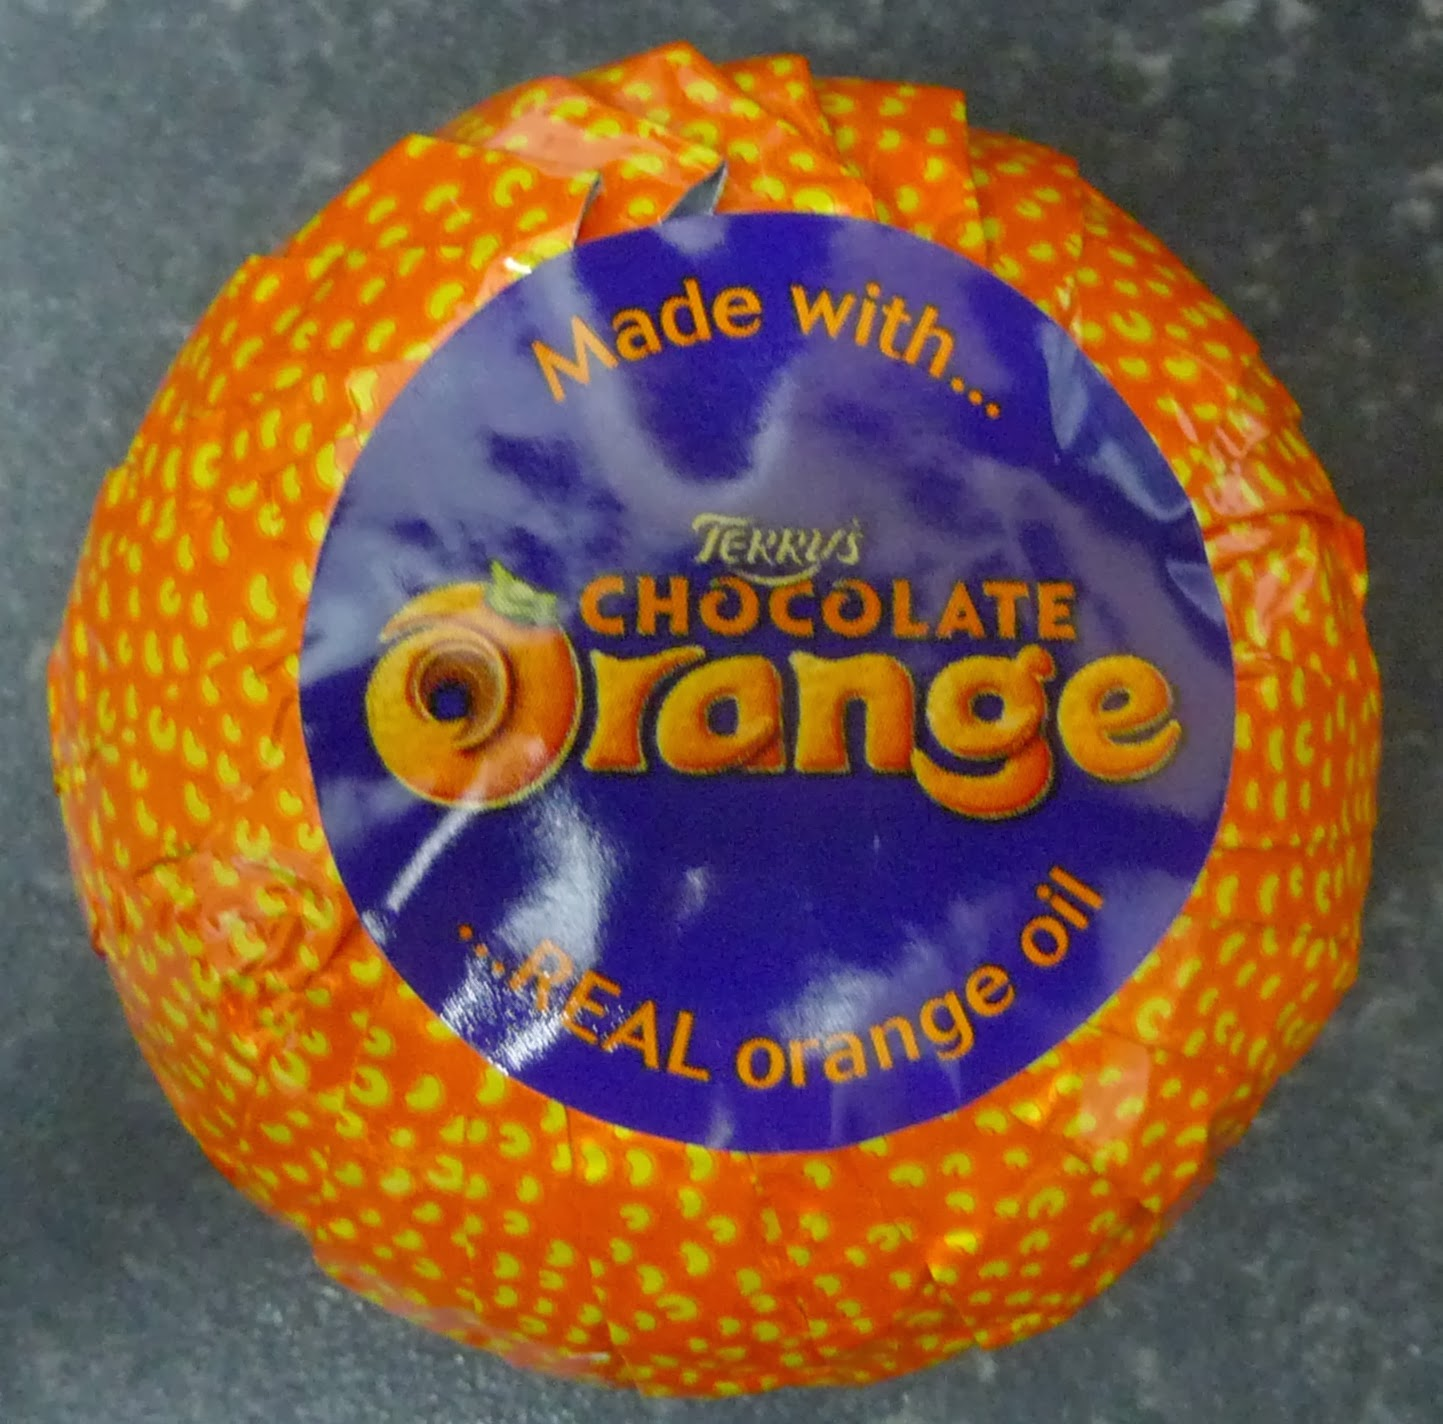 Something to look forward to: Terry's Chocolate Orange: Milk